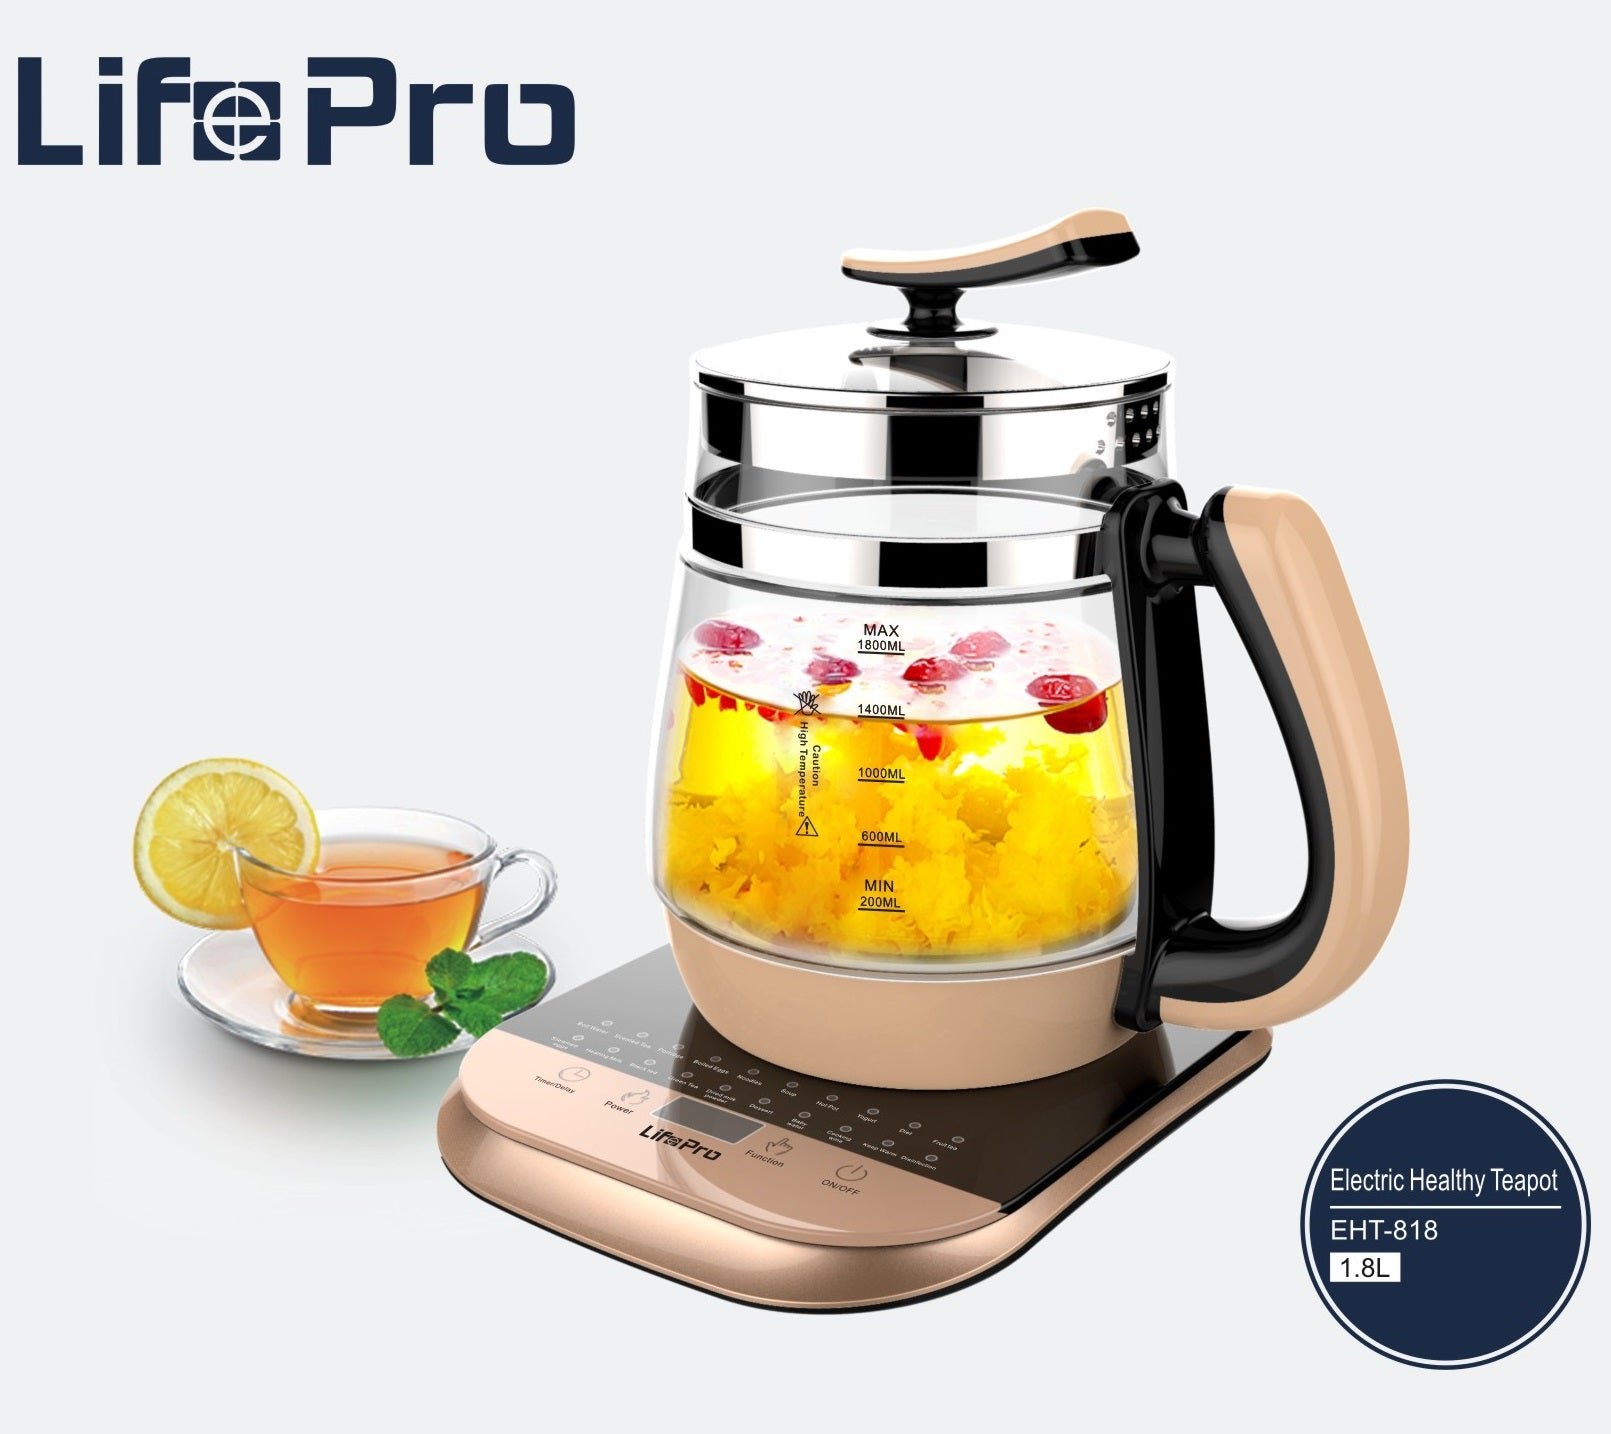 LifePro EHT-818 Golden 1.8L Electric Healthy Teapot/ 20 Preset Functions/18 Months SG Warranty